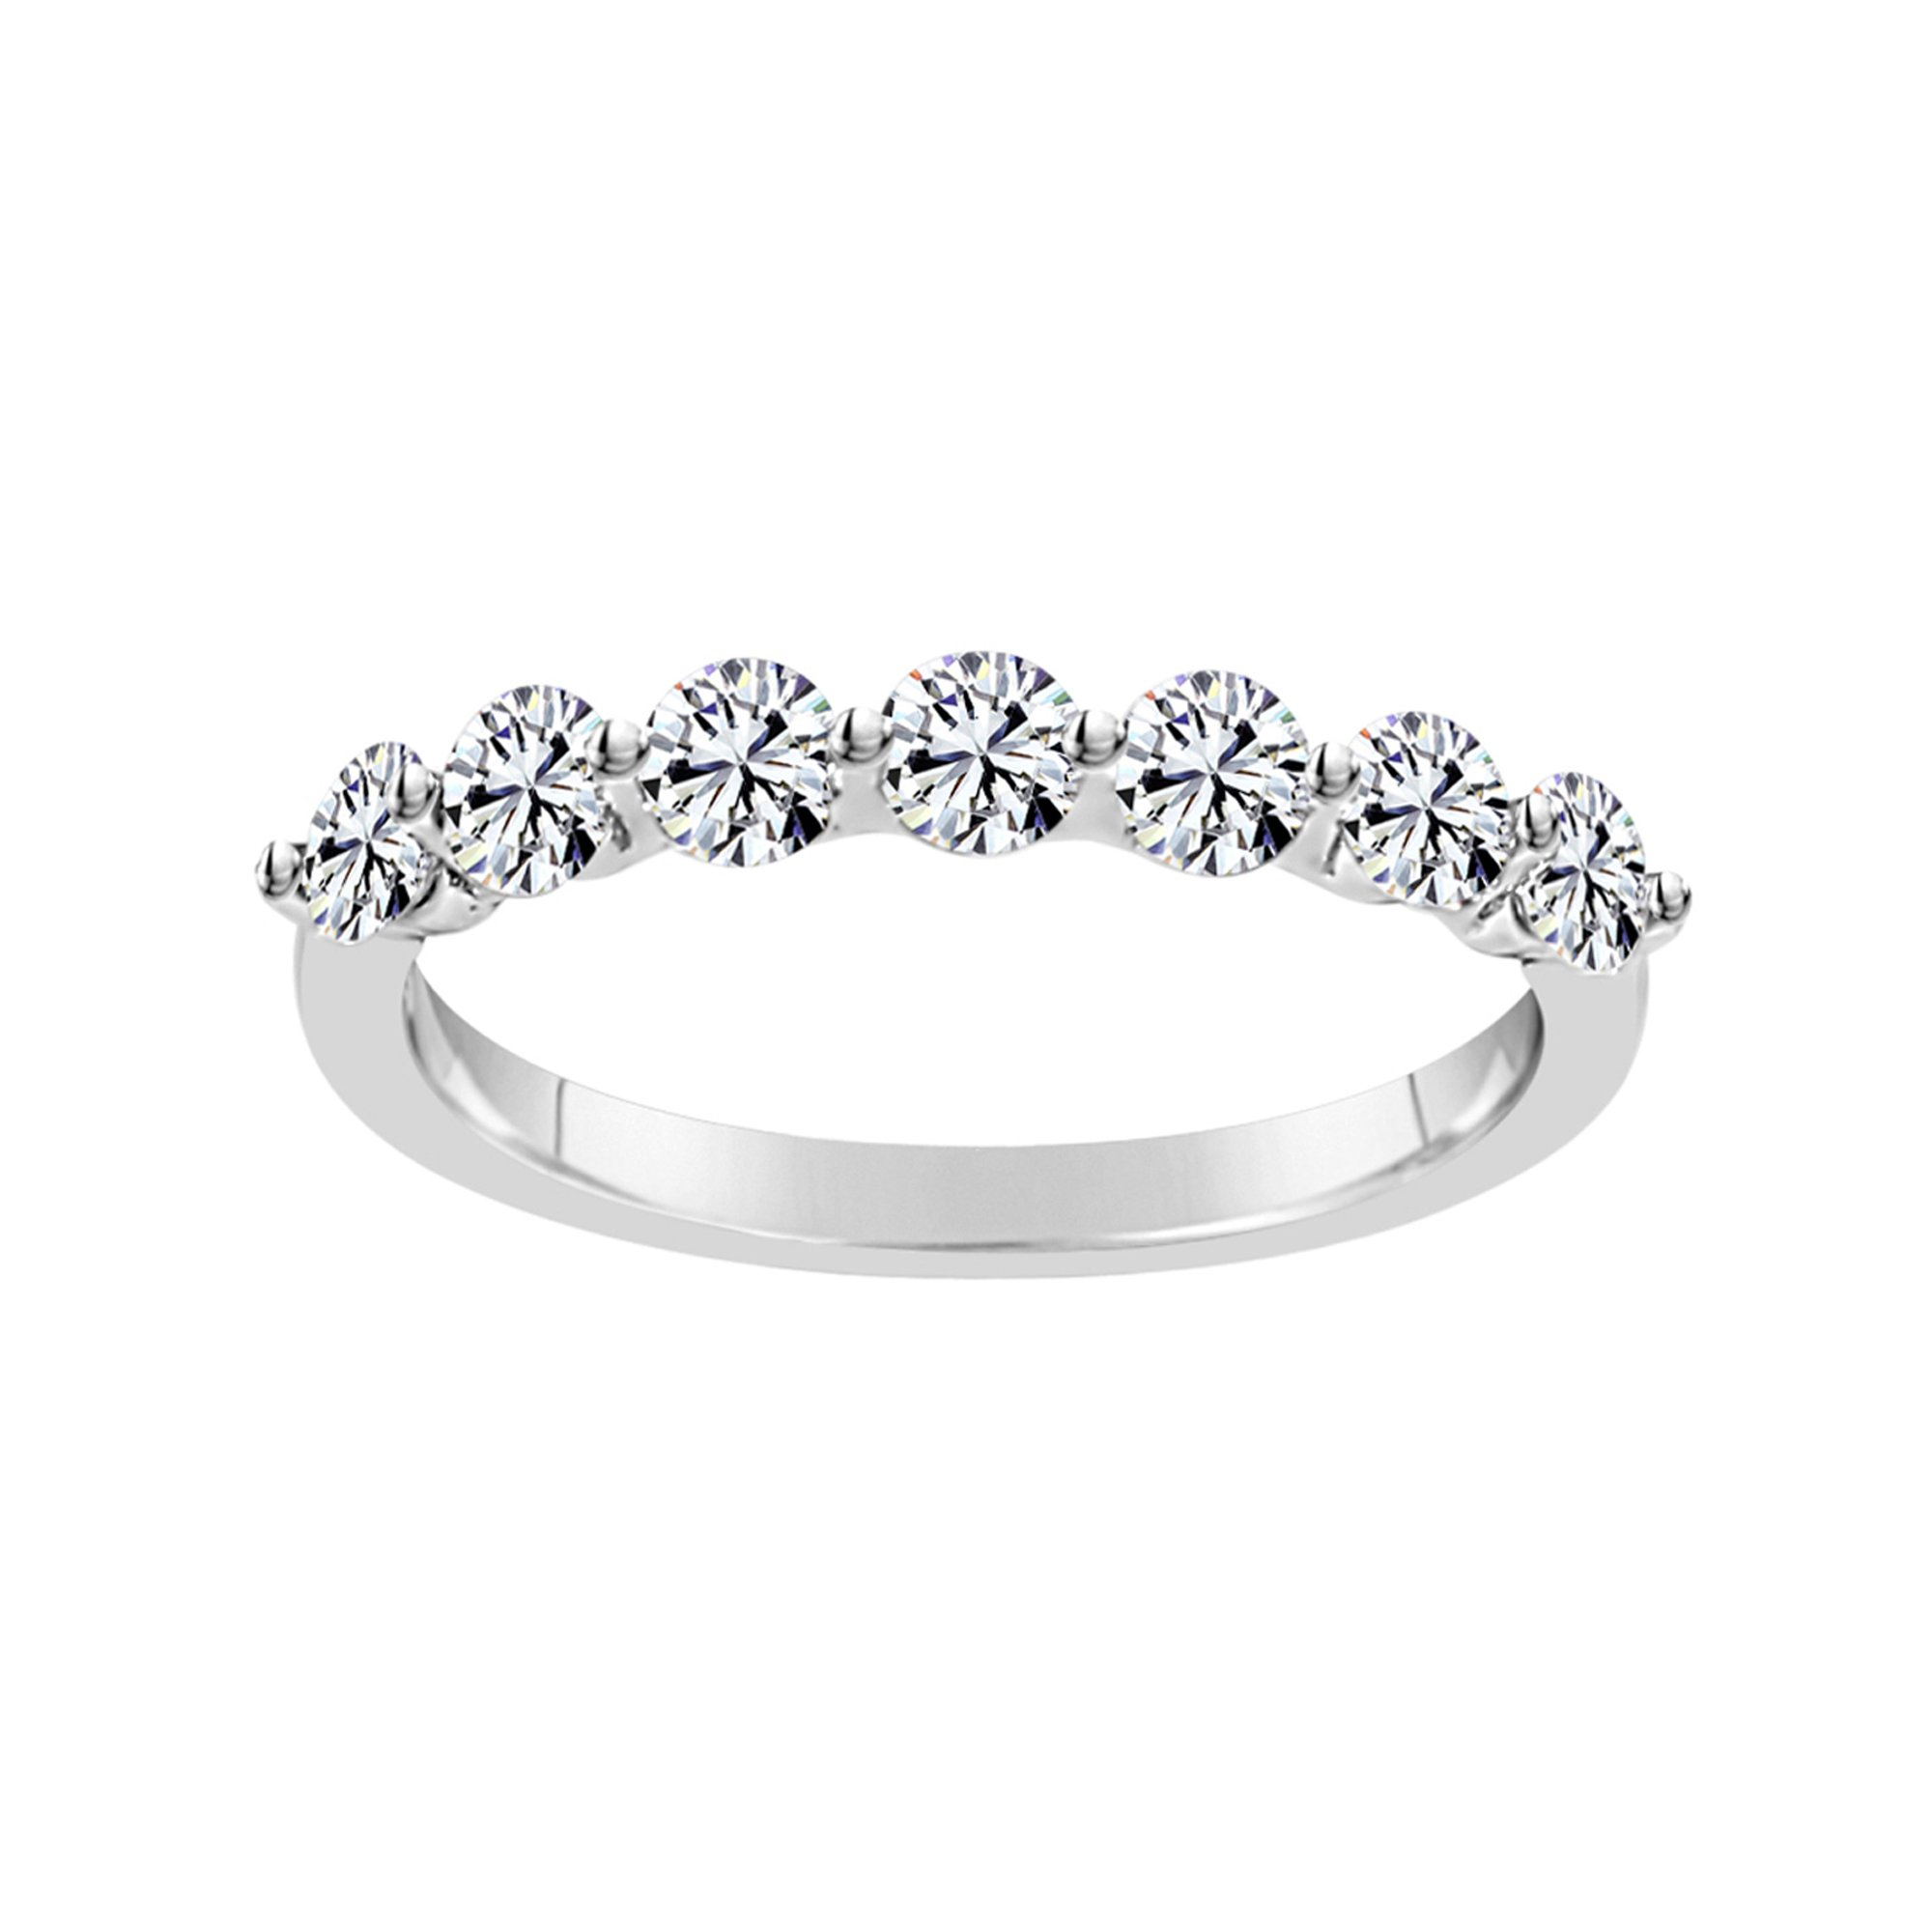 Solstice Sterling Silver 925 Round Band Ring Made with Swarovski Zirconia (3/4 cttw, Size 7)